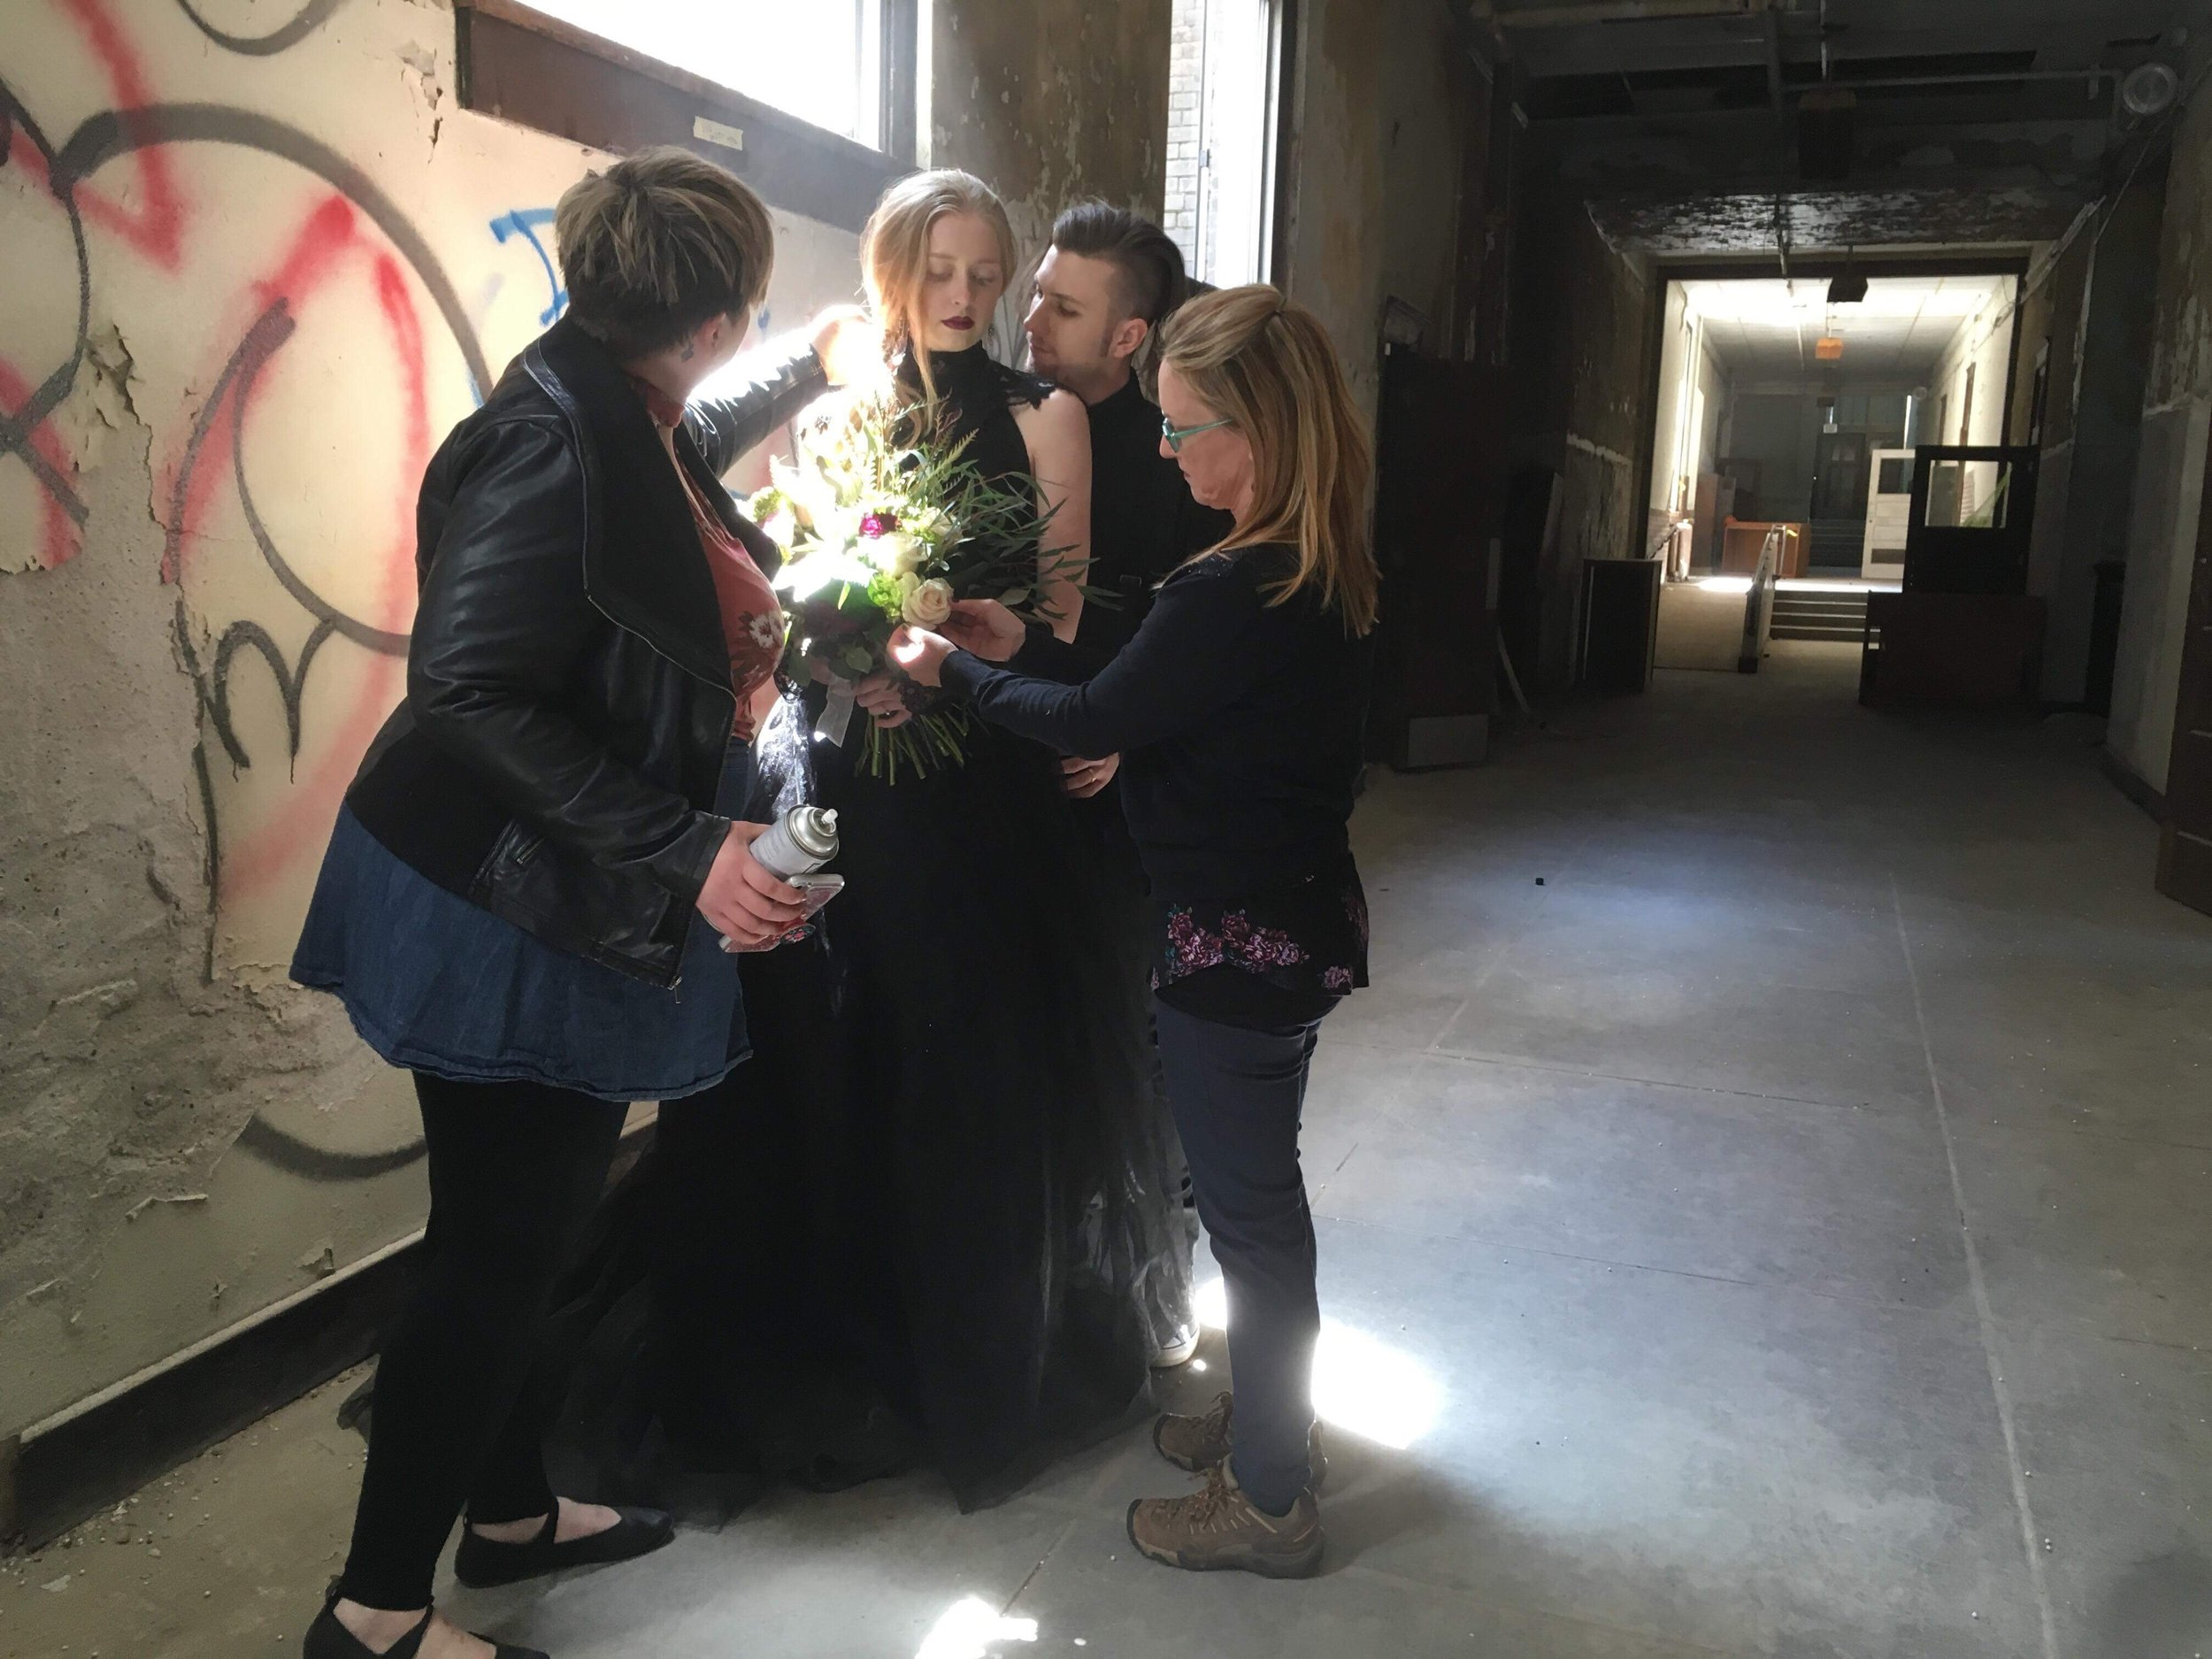 working together to make the magic! - Des Moines has great wedding vendors!We Love to work with :+hair and makeup-Trixies Aveda Salon+photography-Raelyn Ramey+menswear-Skeffingtons Formal Wear